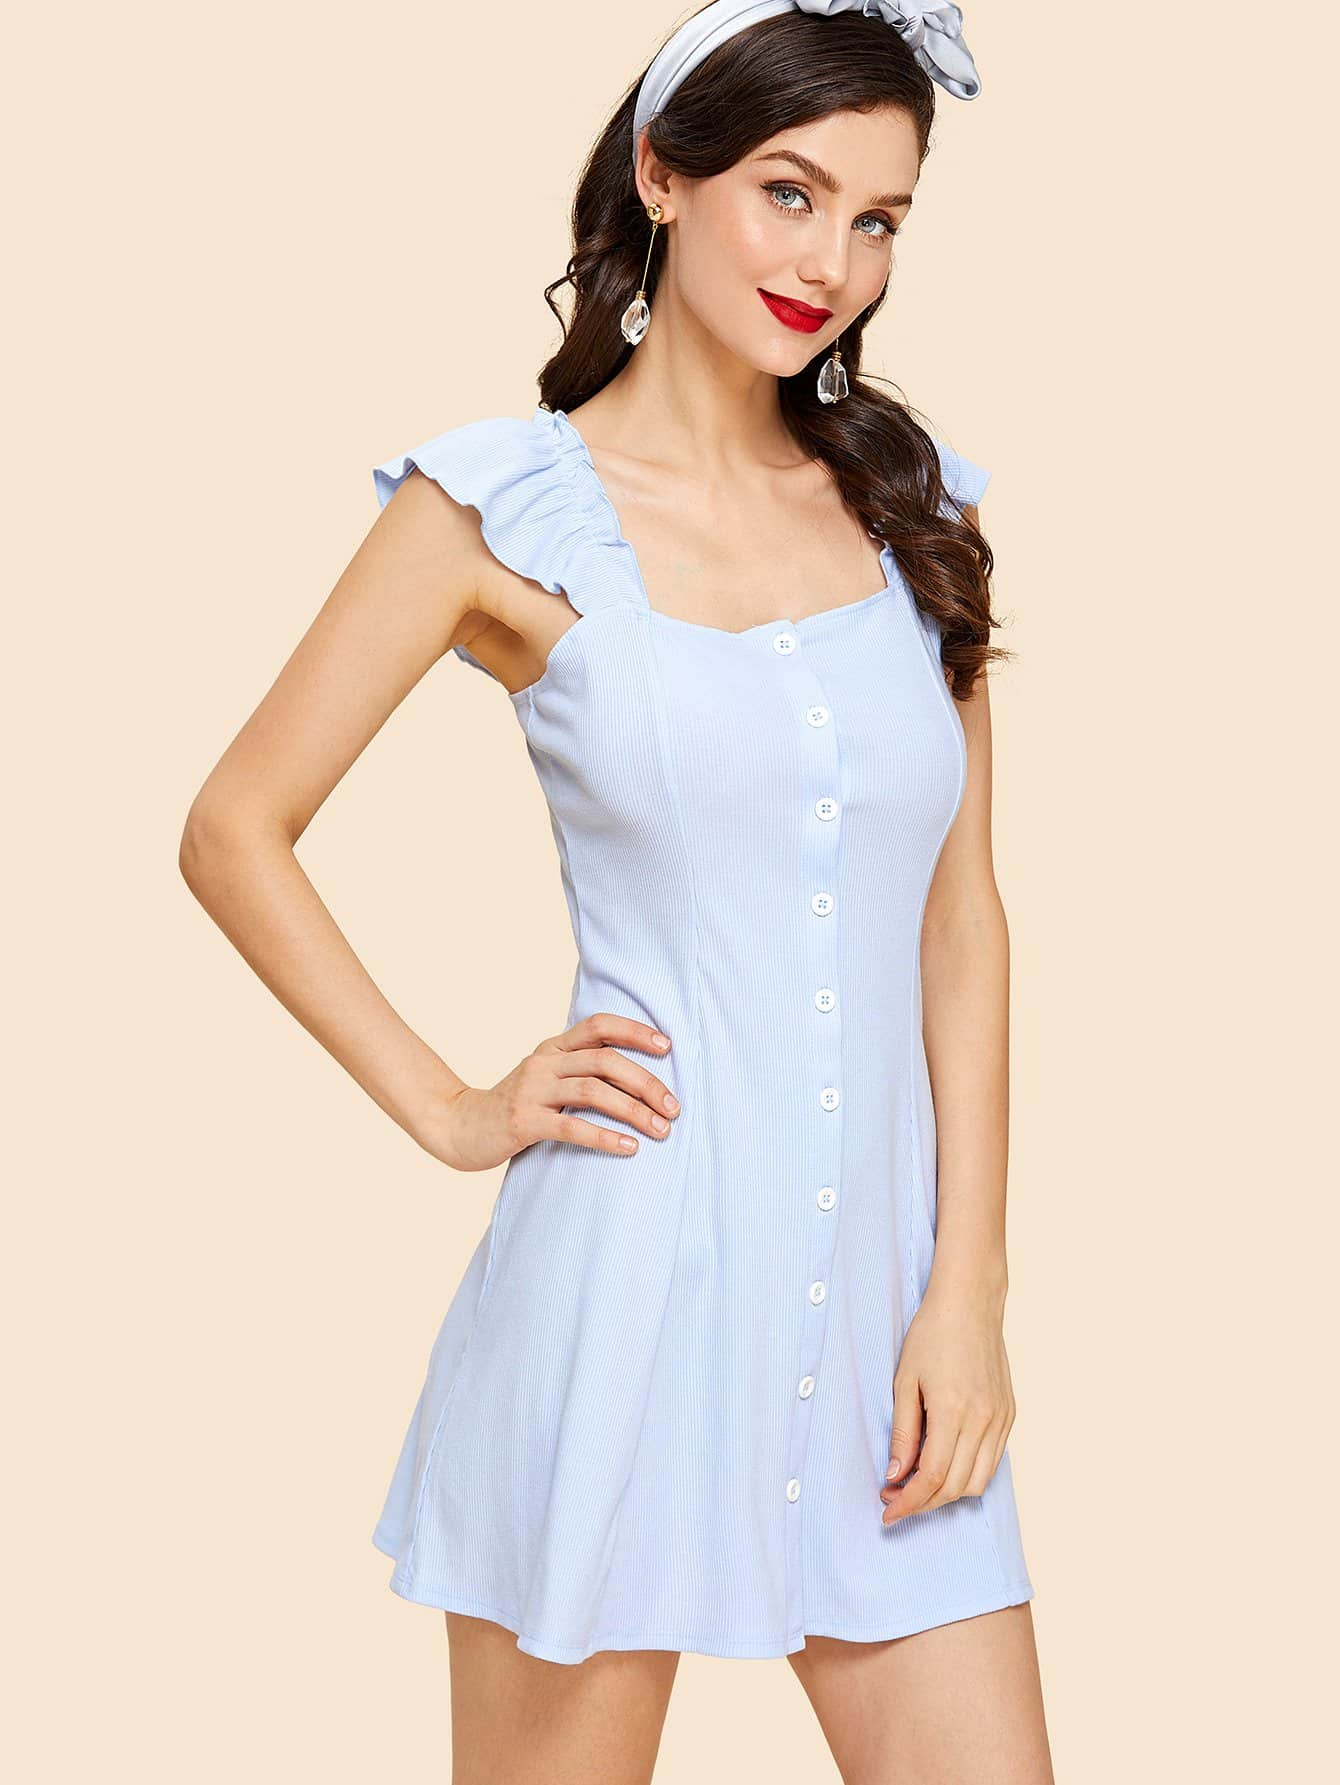 Ruffle Strap Button Up Dress surplice neck ruffle embellished button up dress